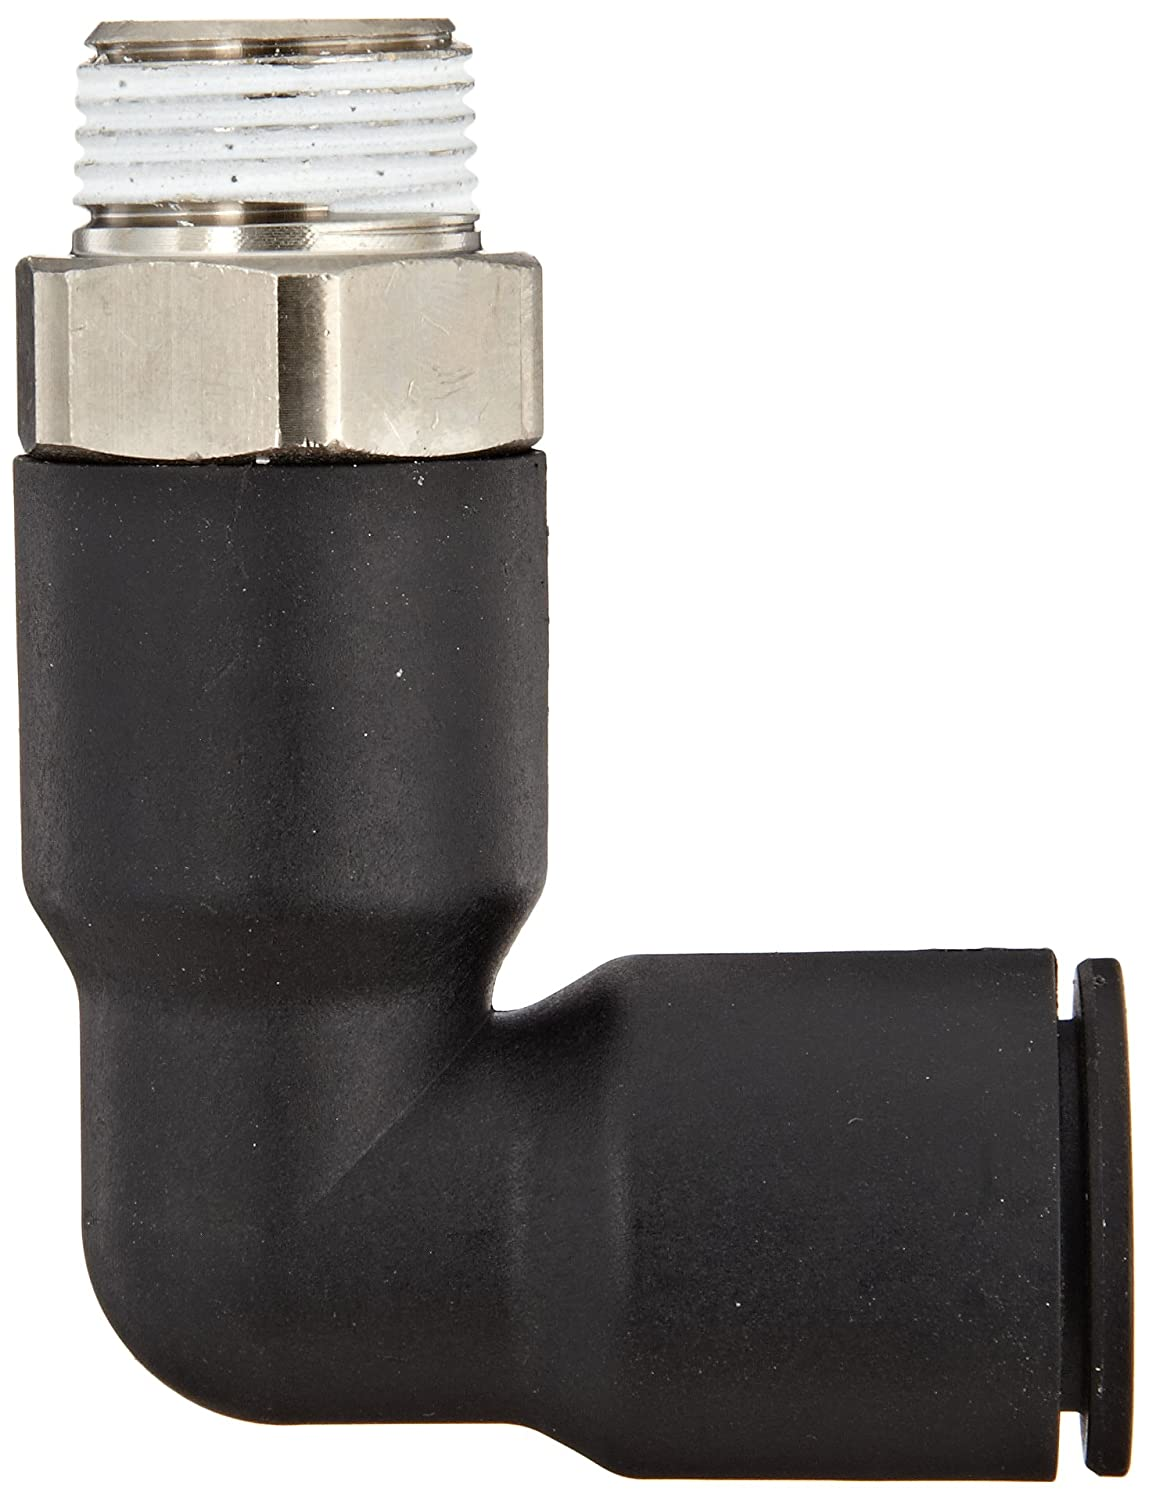 12 mm Tube OD x 3//8 BSPT Male Legris 3129 12 17 Nylon /& Nickel-Plated Brass Push-to-Connect Fitting 90 Degree Extended Elbow